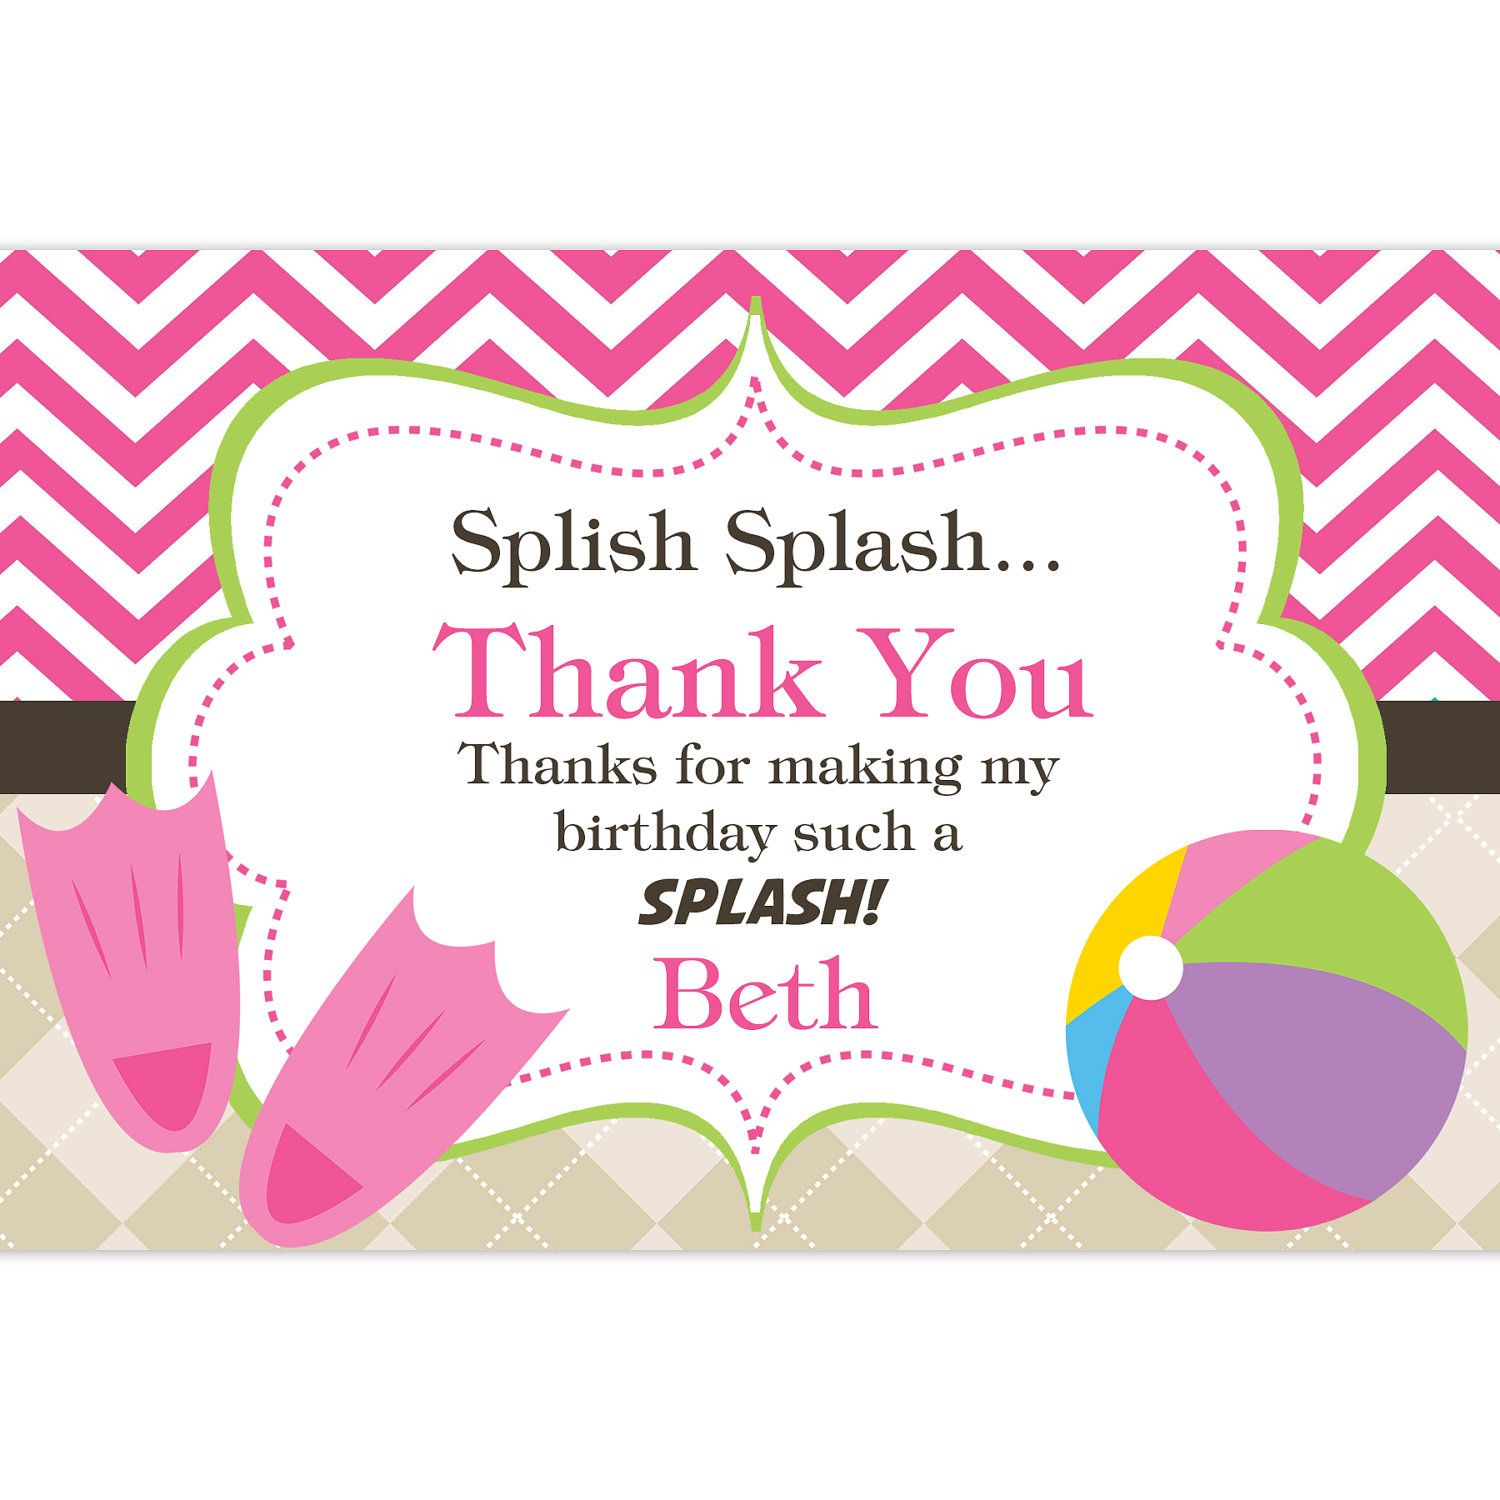 Pool party thank you card hot pink chevron and tan argyle beach pool party thank you card hot pink chevron and tan argyle beach ball personalized birthday party thank you a digital printable file bookmarktalkfo Image collections